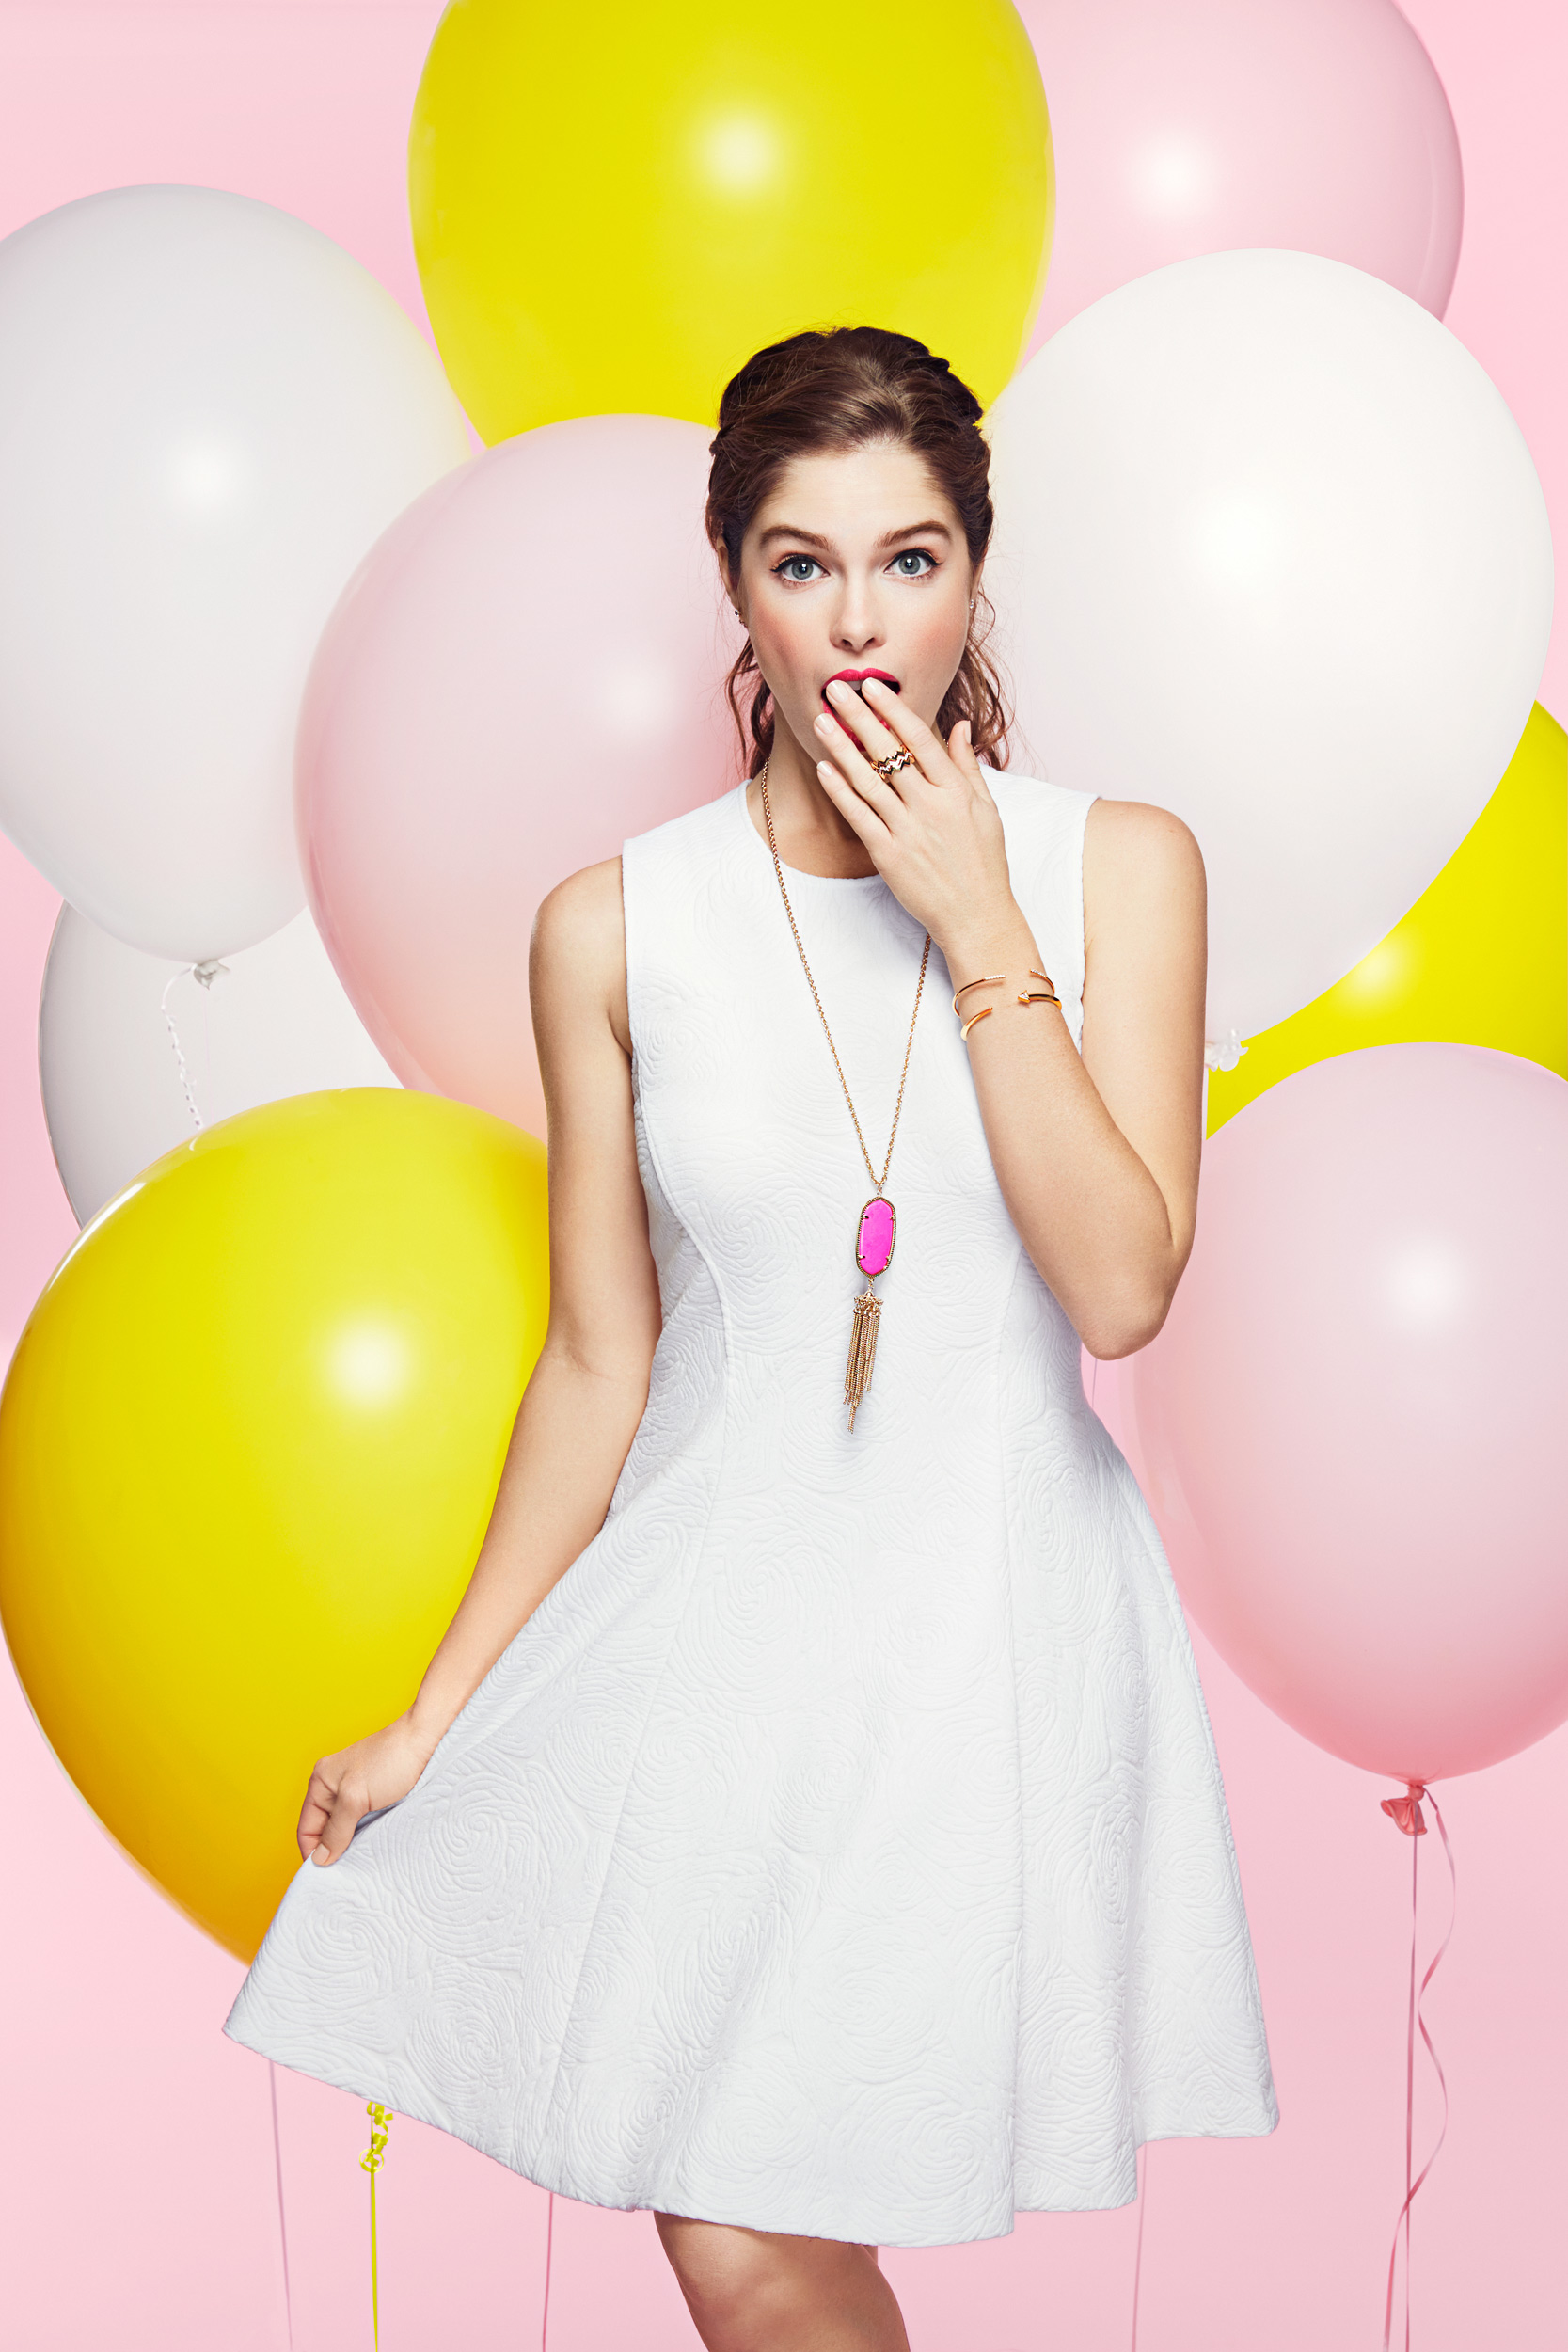 Girl standing with balloons wearing a white dress